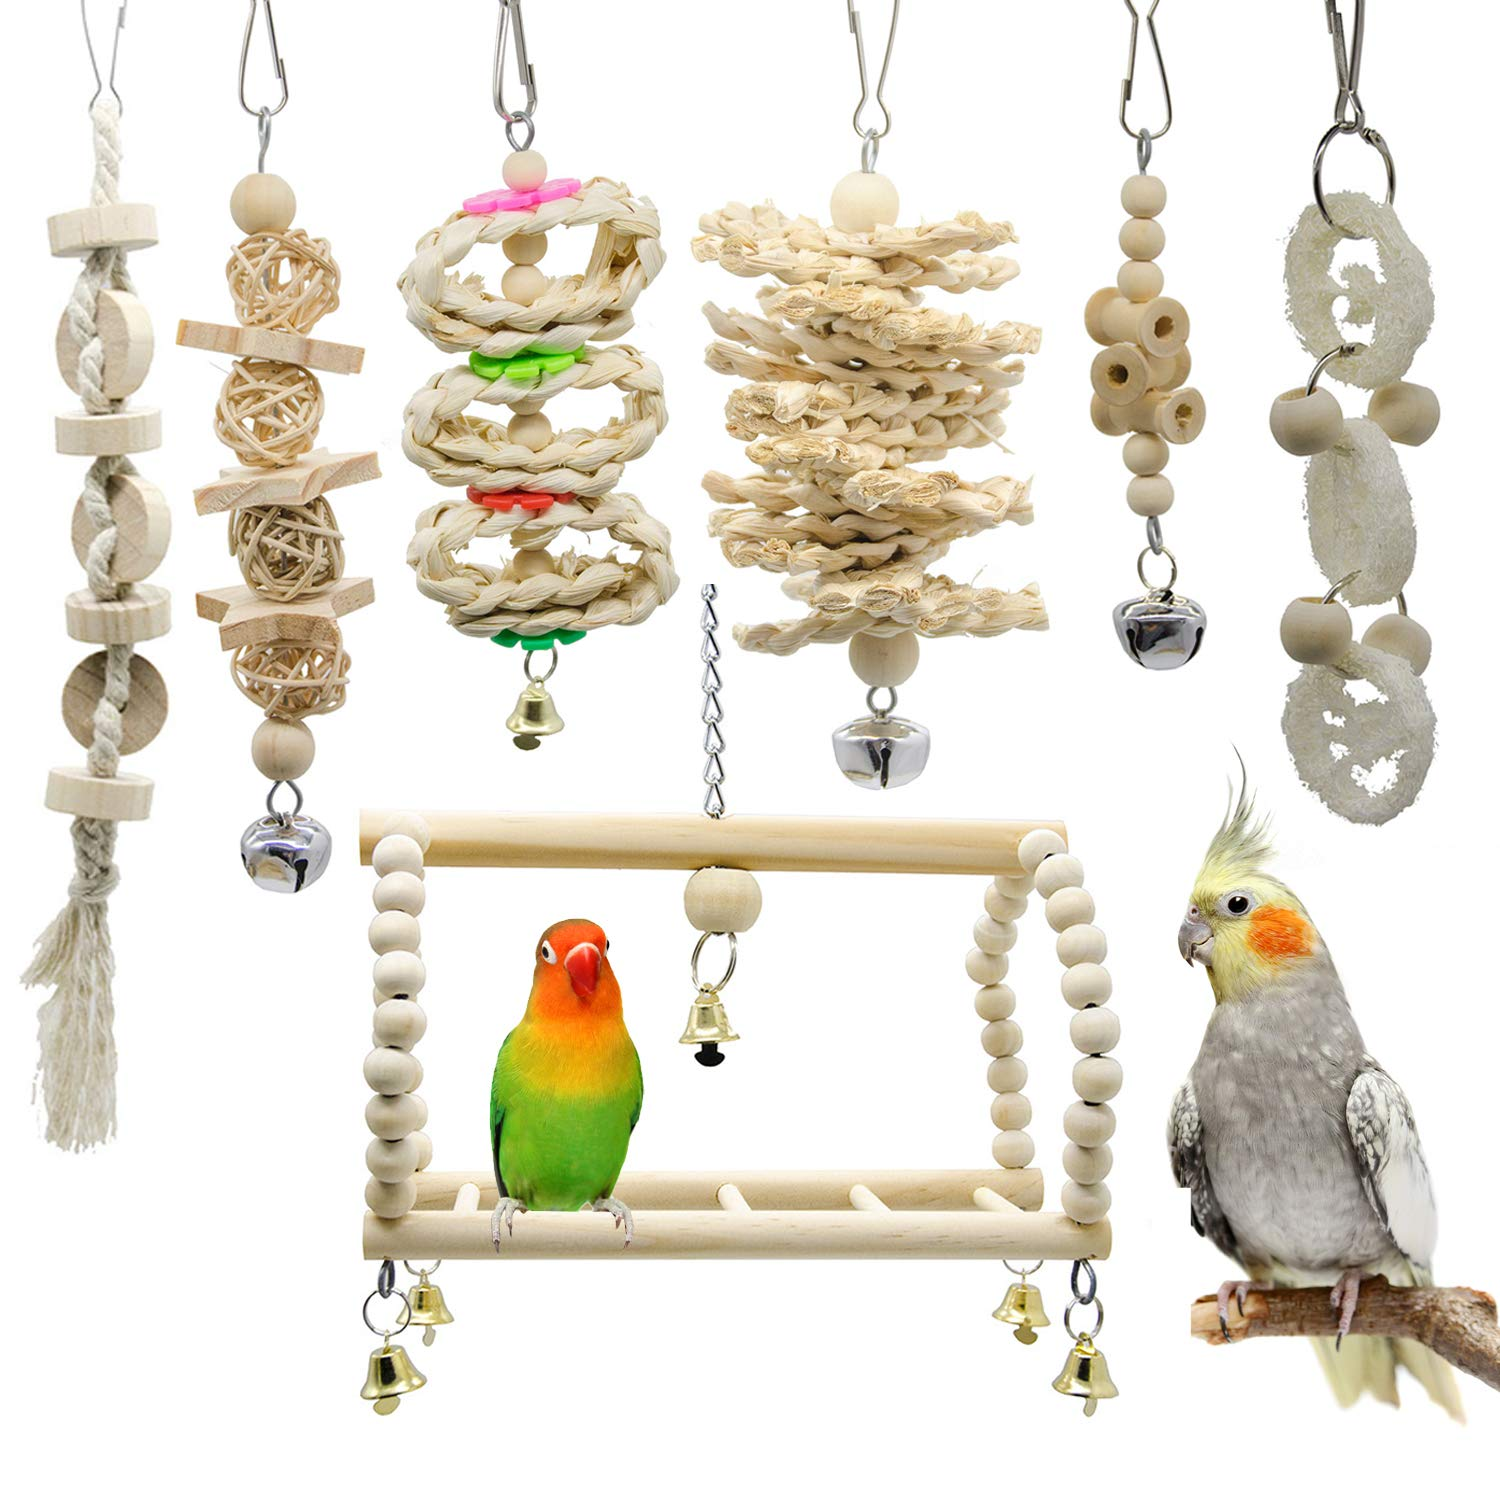 Deloky 7 Packs Bird Parrot Swing Chewing Toys- Natural Wood Hanging Bell Bird Cage Toys Suitable for Small Parakeets, Cockatiels, Conures, Finches,Budgie,Macaws, Parrots, Love Birds by Deloky